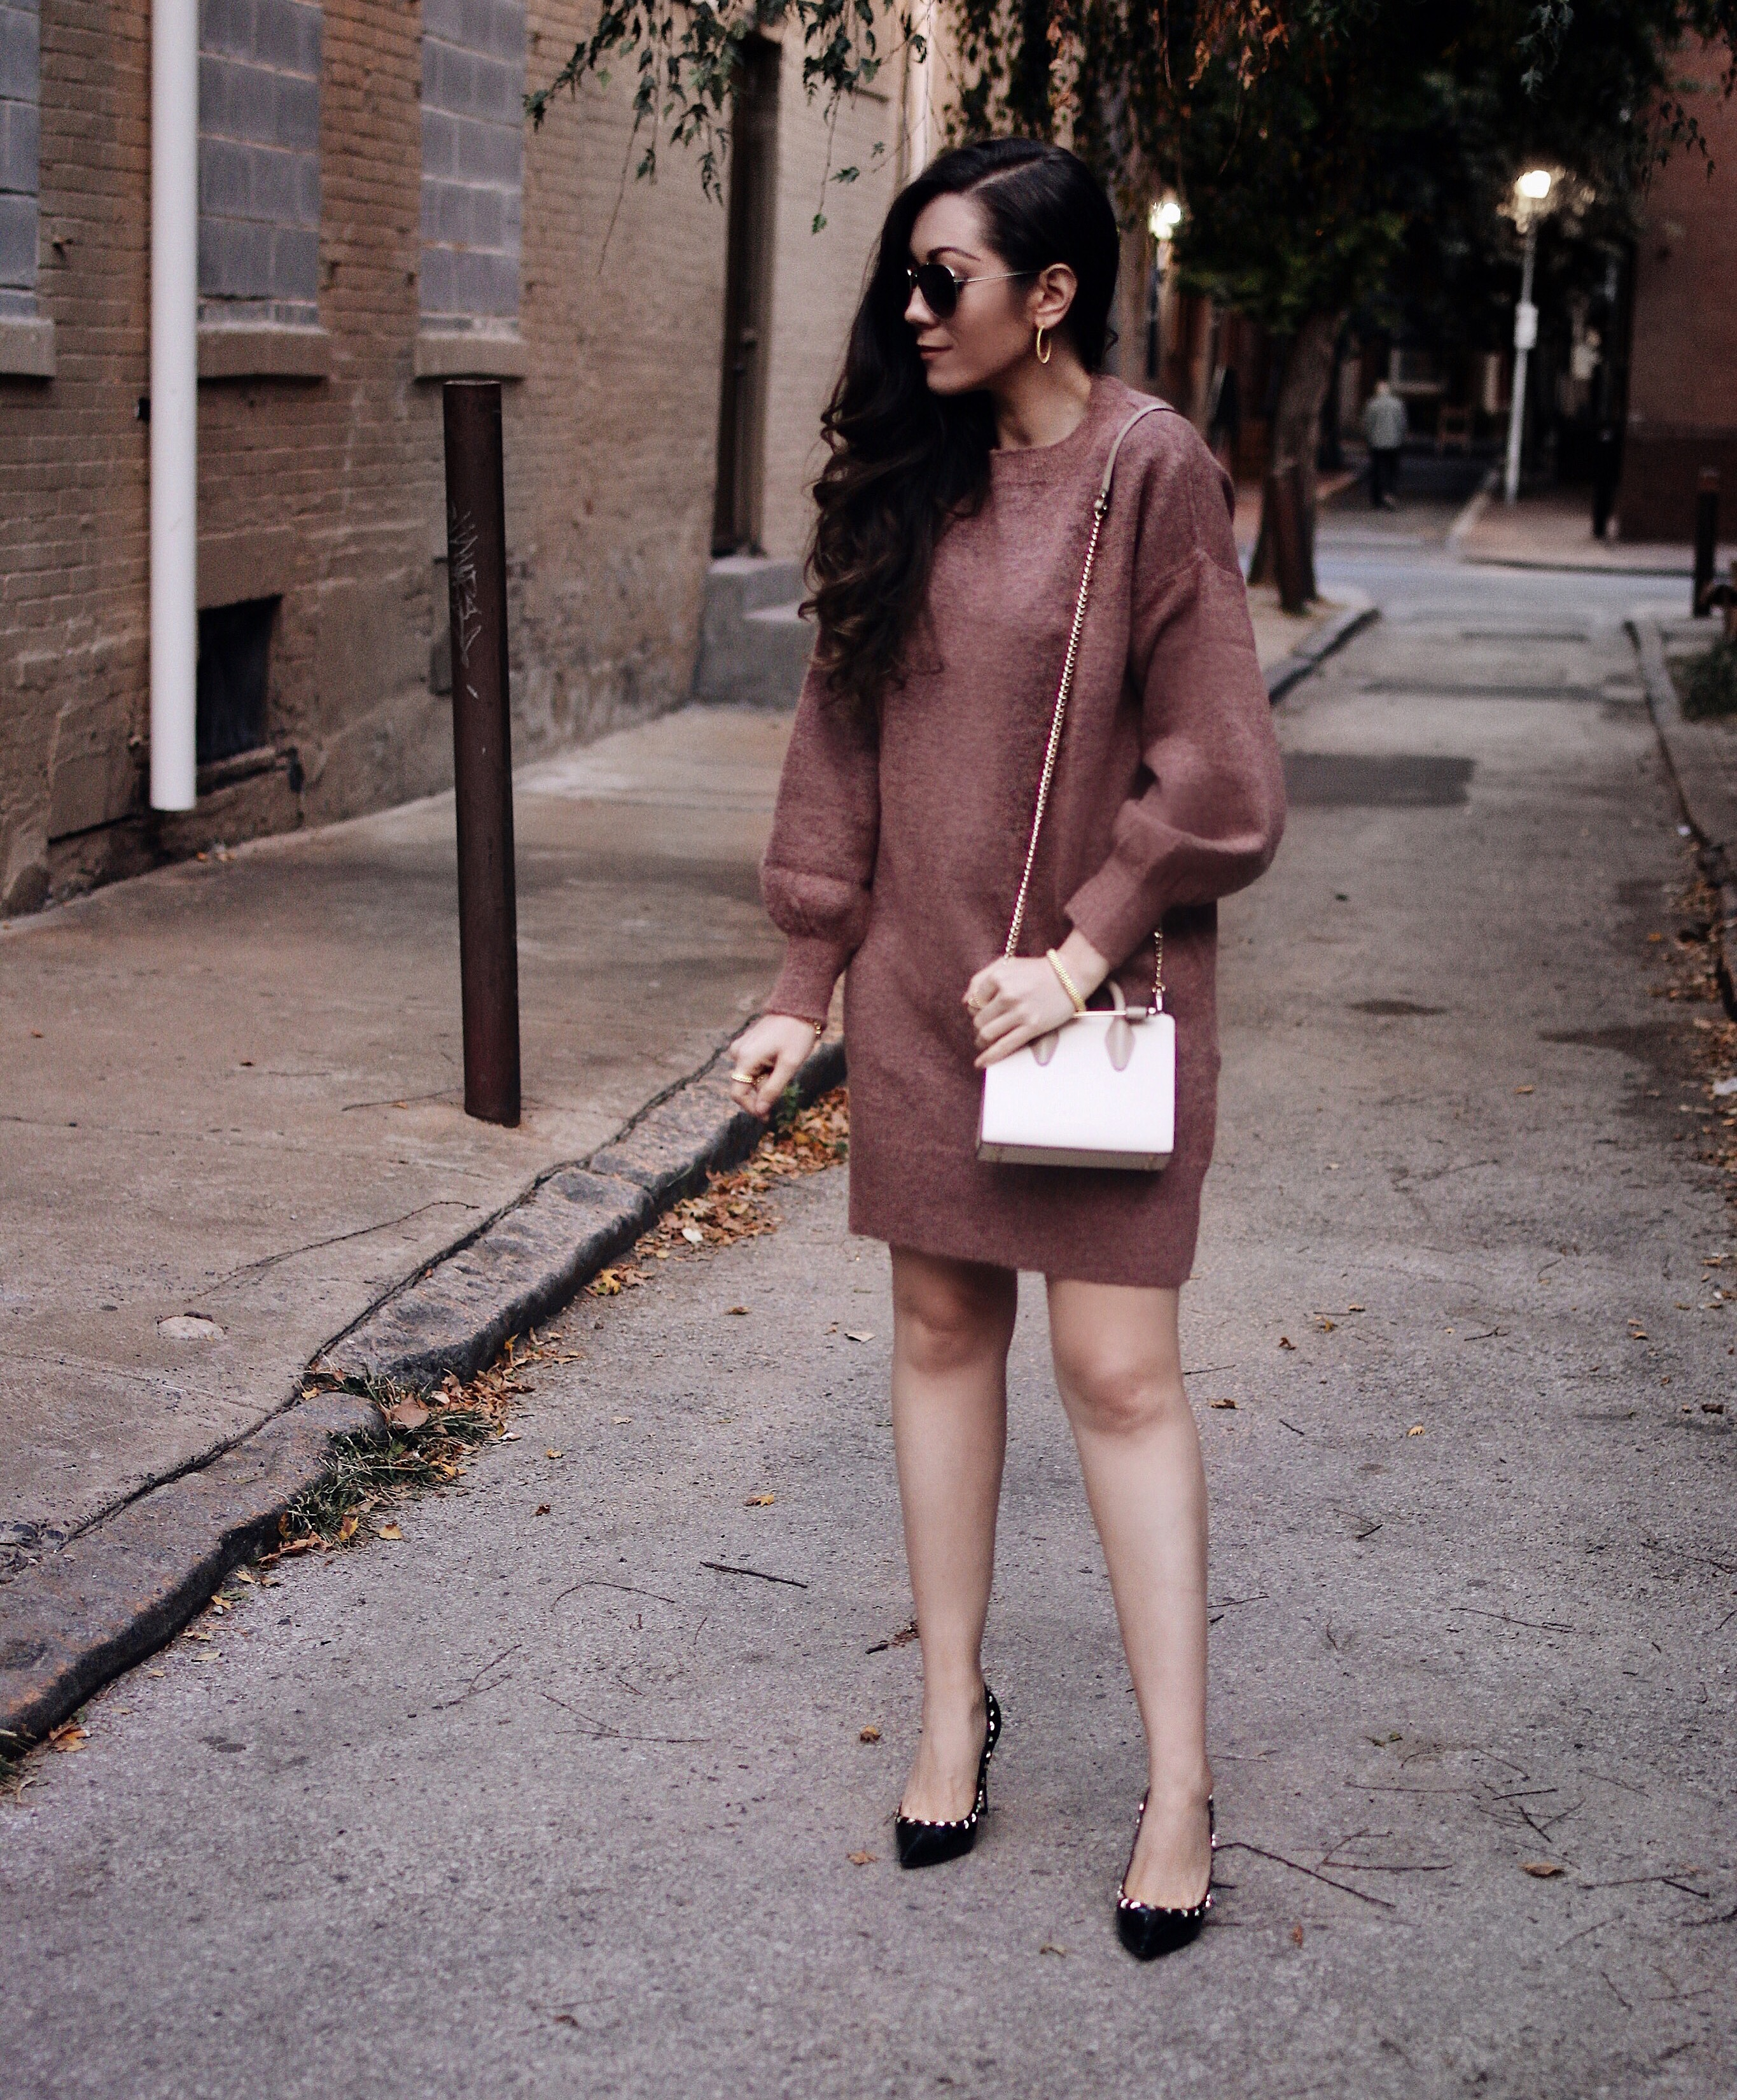 The Coziest Sweater Dress & Tips for Fighting through Discouragement! | Feat Red Valentino & Strathberry